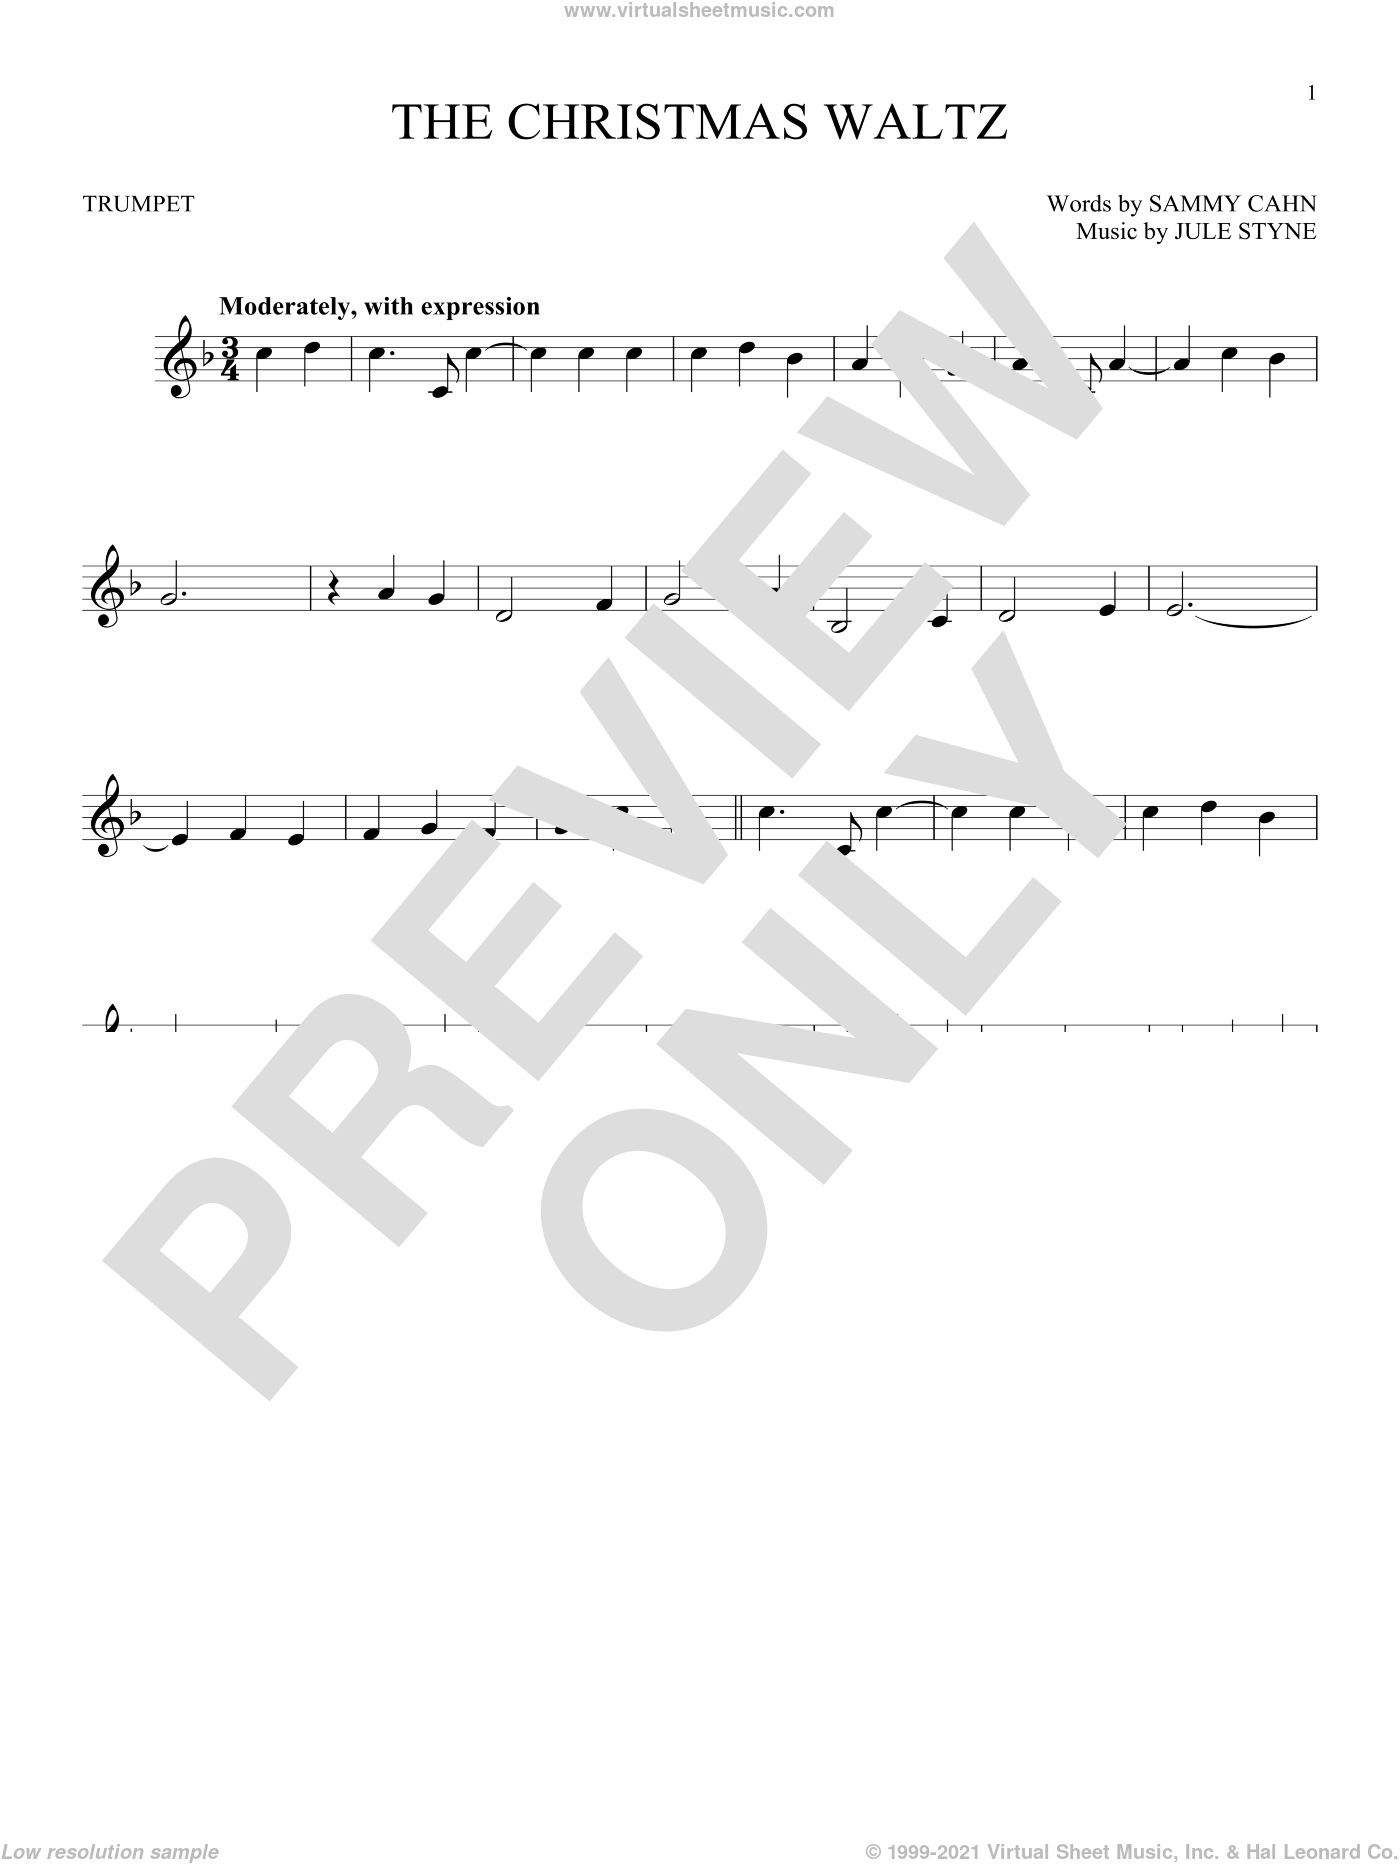 The Christmas Waltz sheet music for trumpet solo by Sammy Cahn